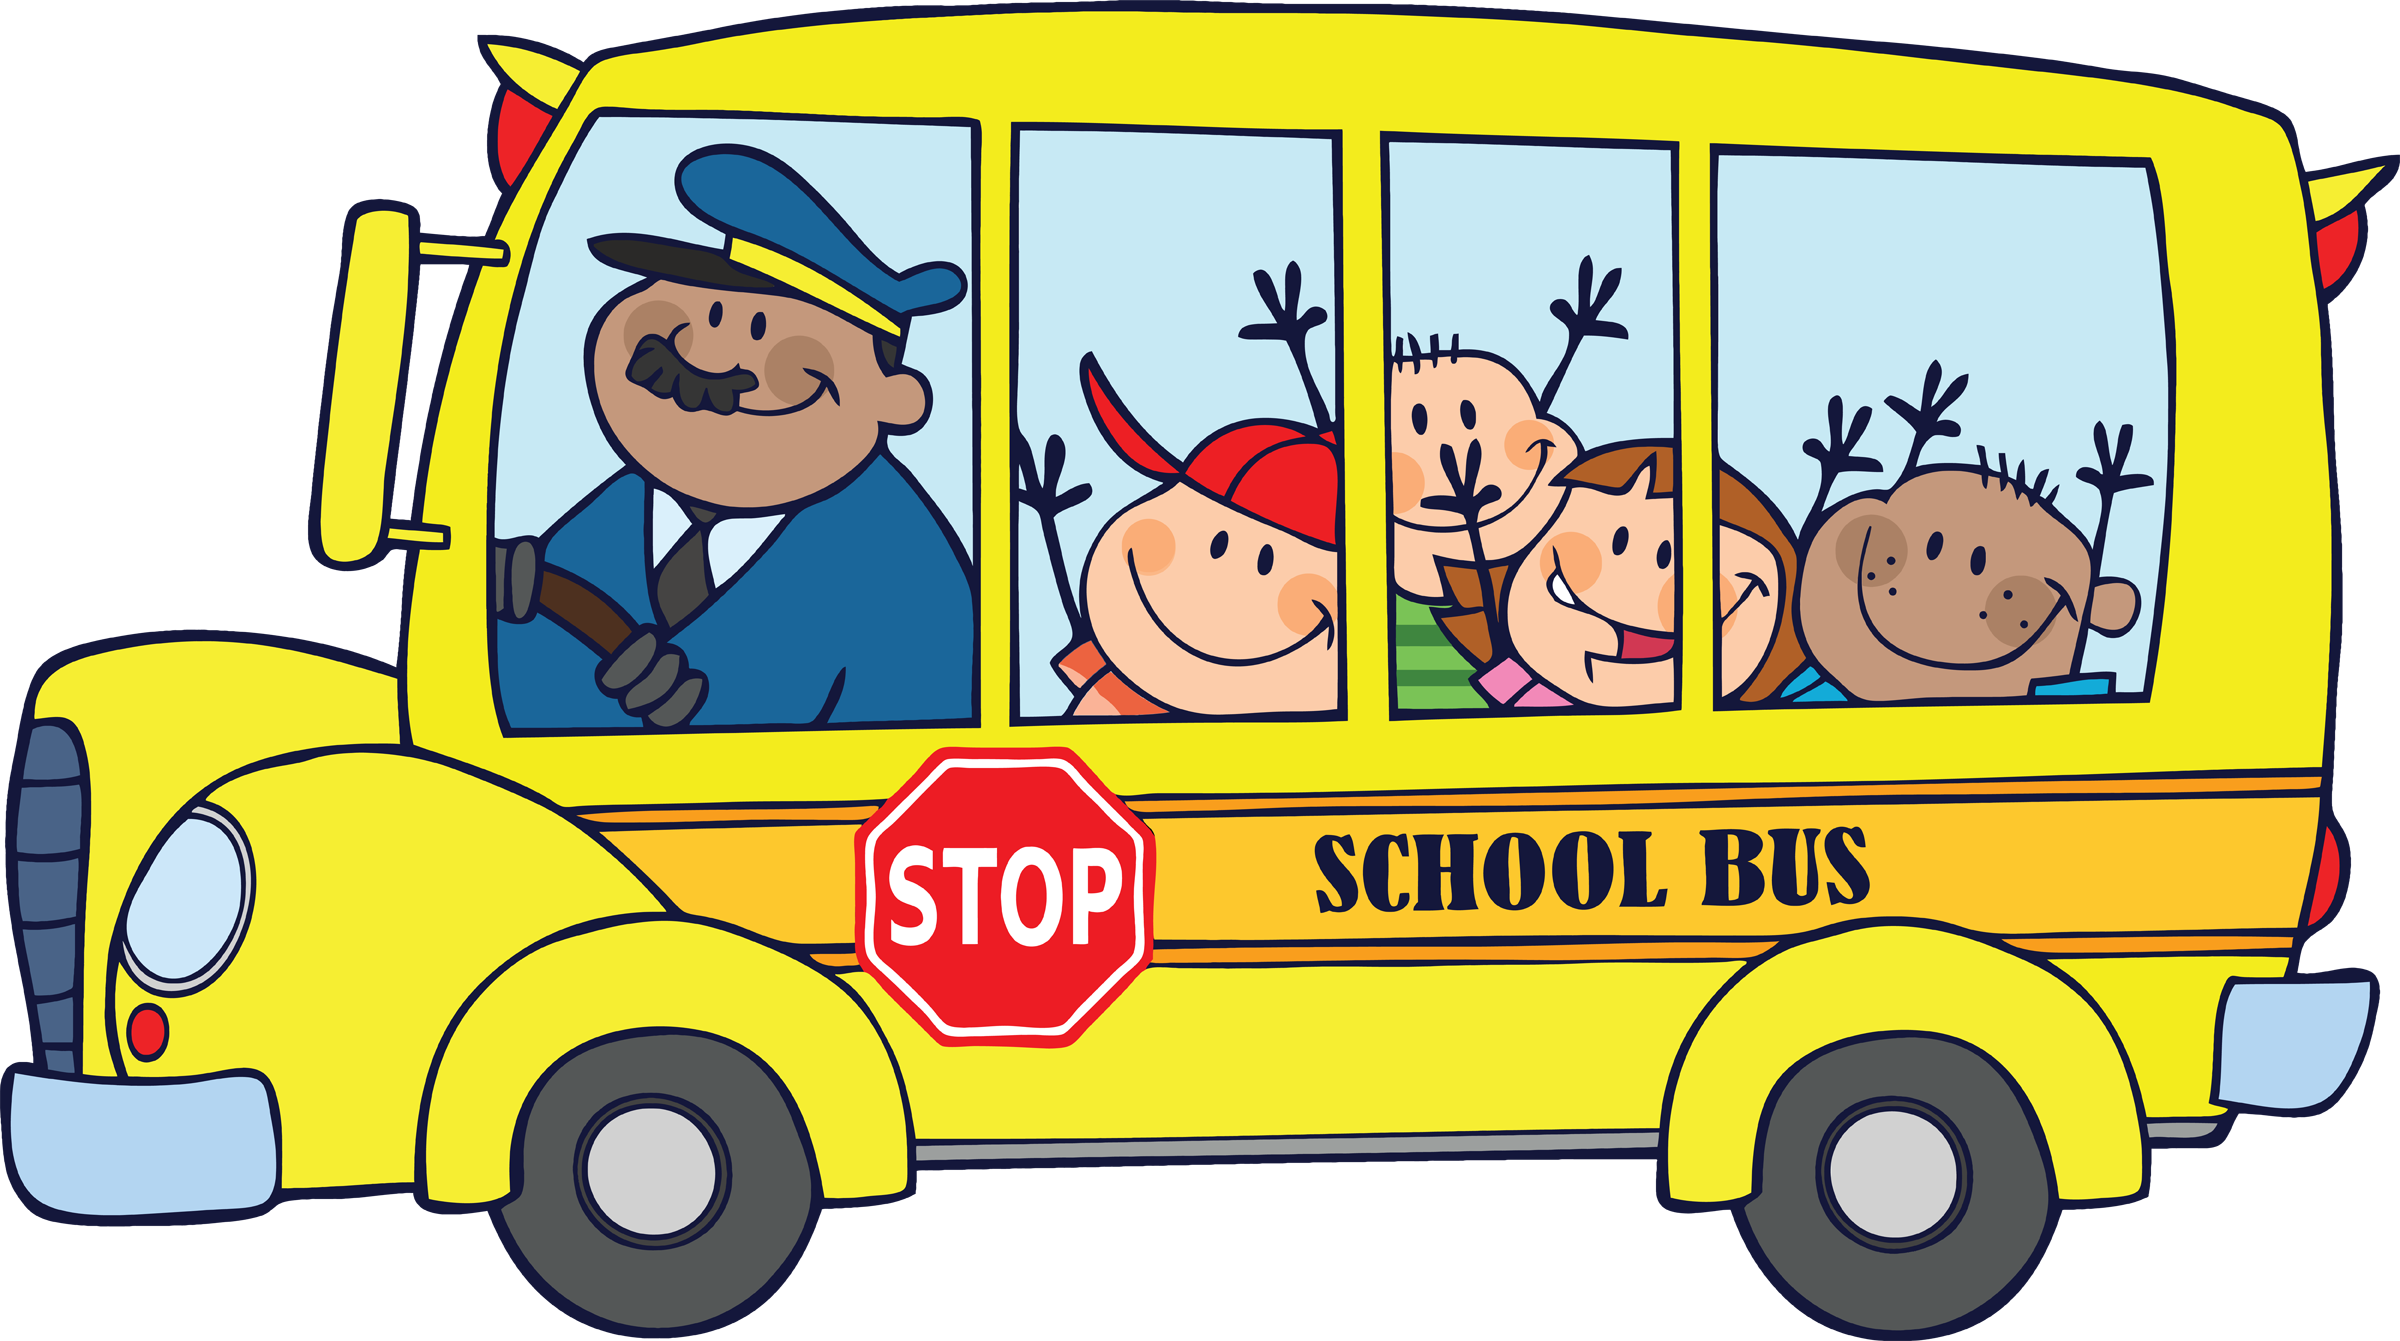 karma bus driver funny pinterest bus driver and karma rh pinterest com Mickey Mouse End of School Year Mickey Mouse End of School Year